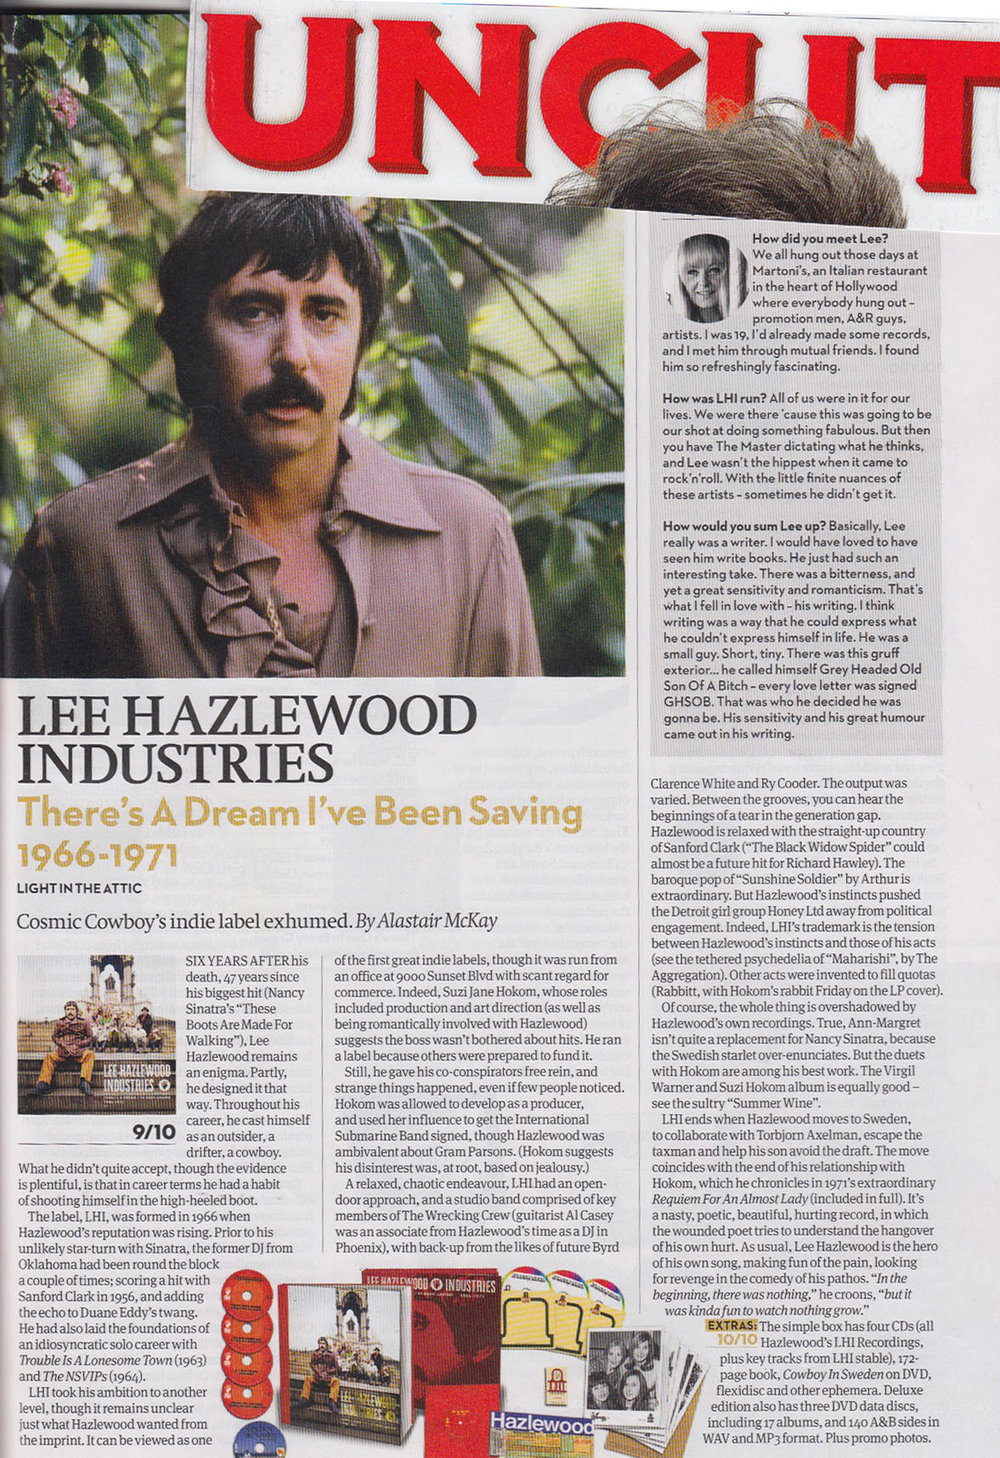 Lee Hazlewood There's A Dream I've Been Saving: Lee Hazlewood Industries,  Uncut , Jan. 2014